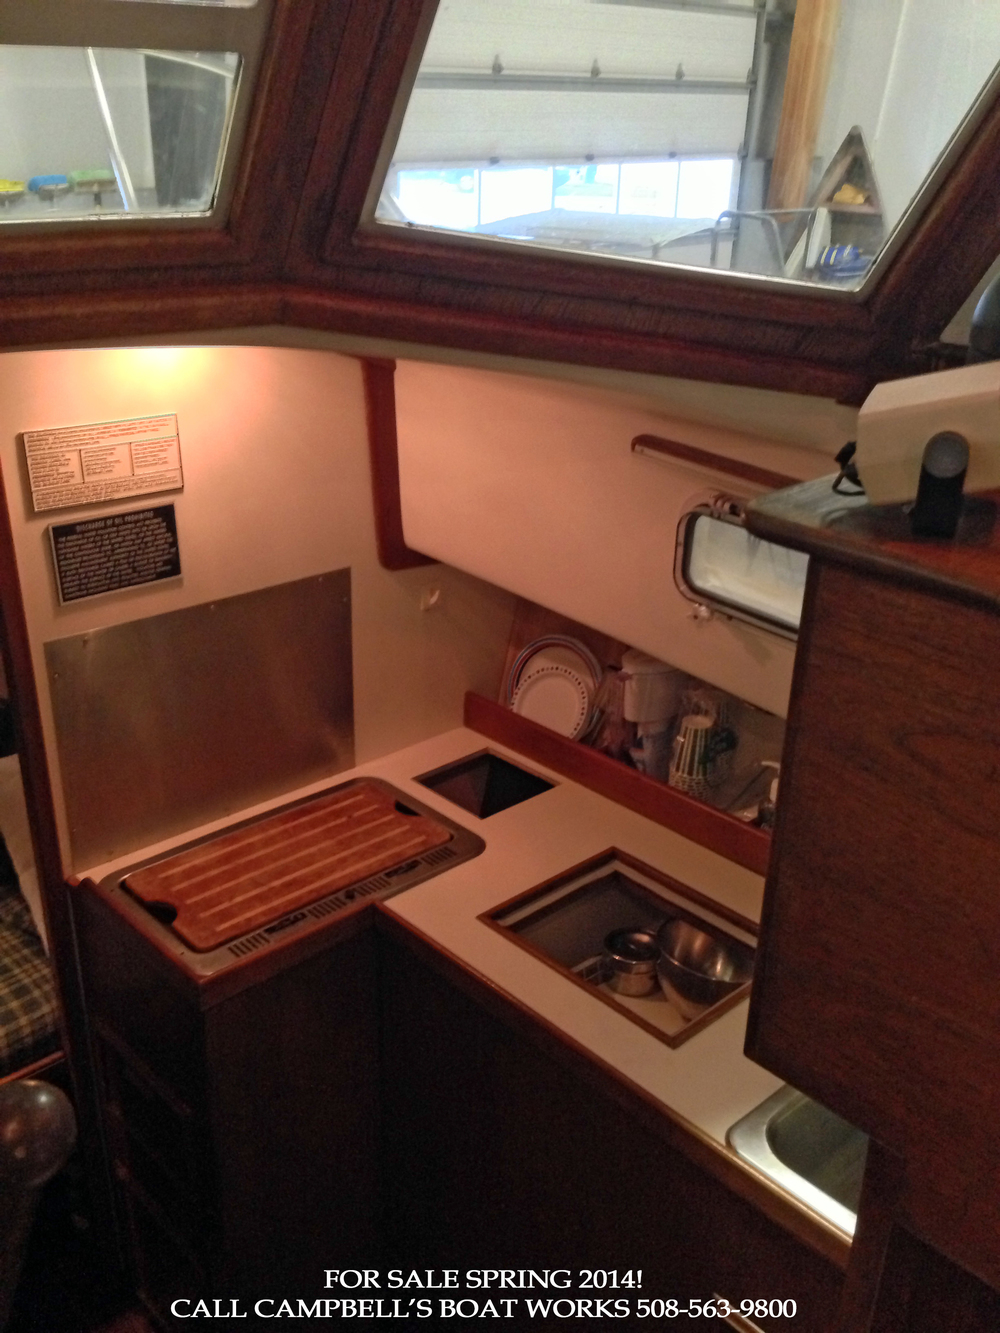 Galley of a Cape Dory 28 Hardtop For Sale